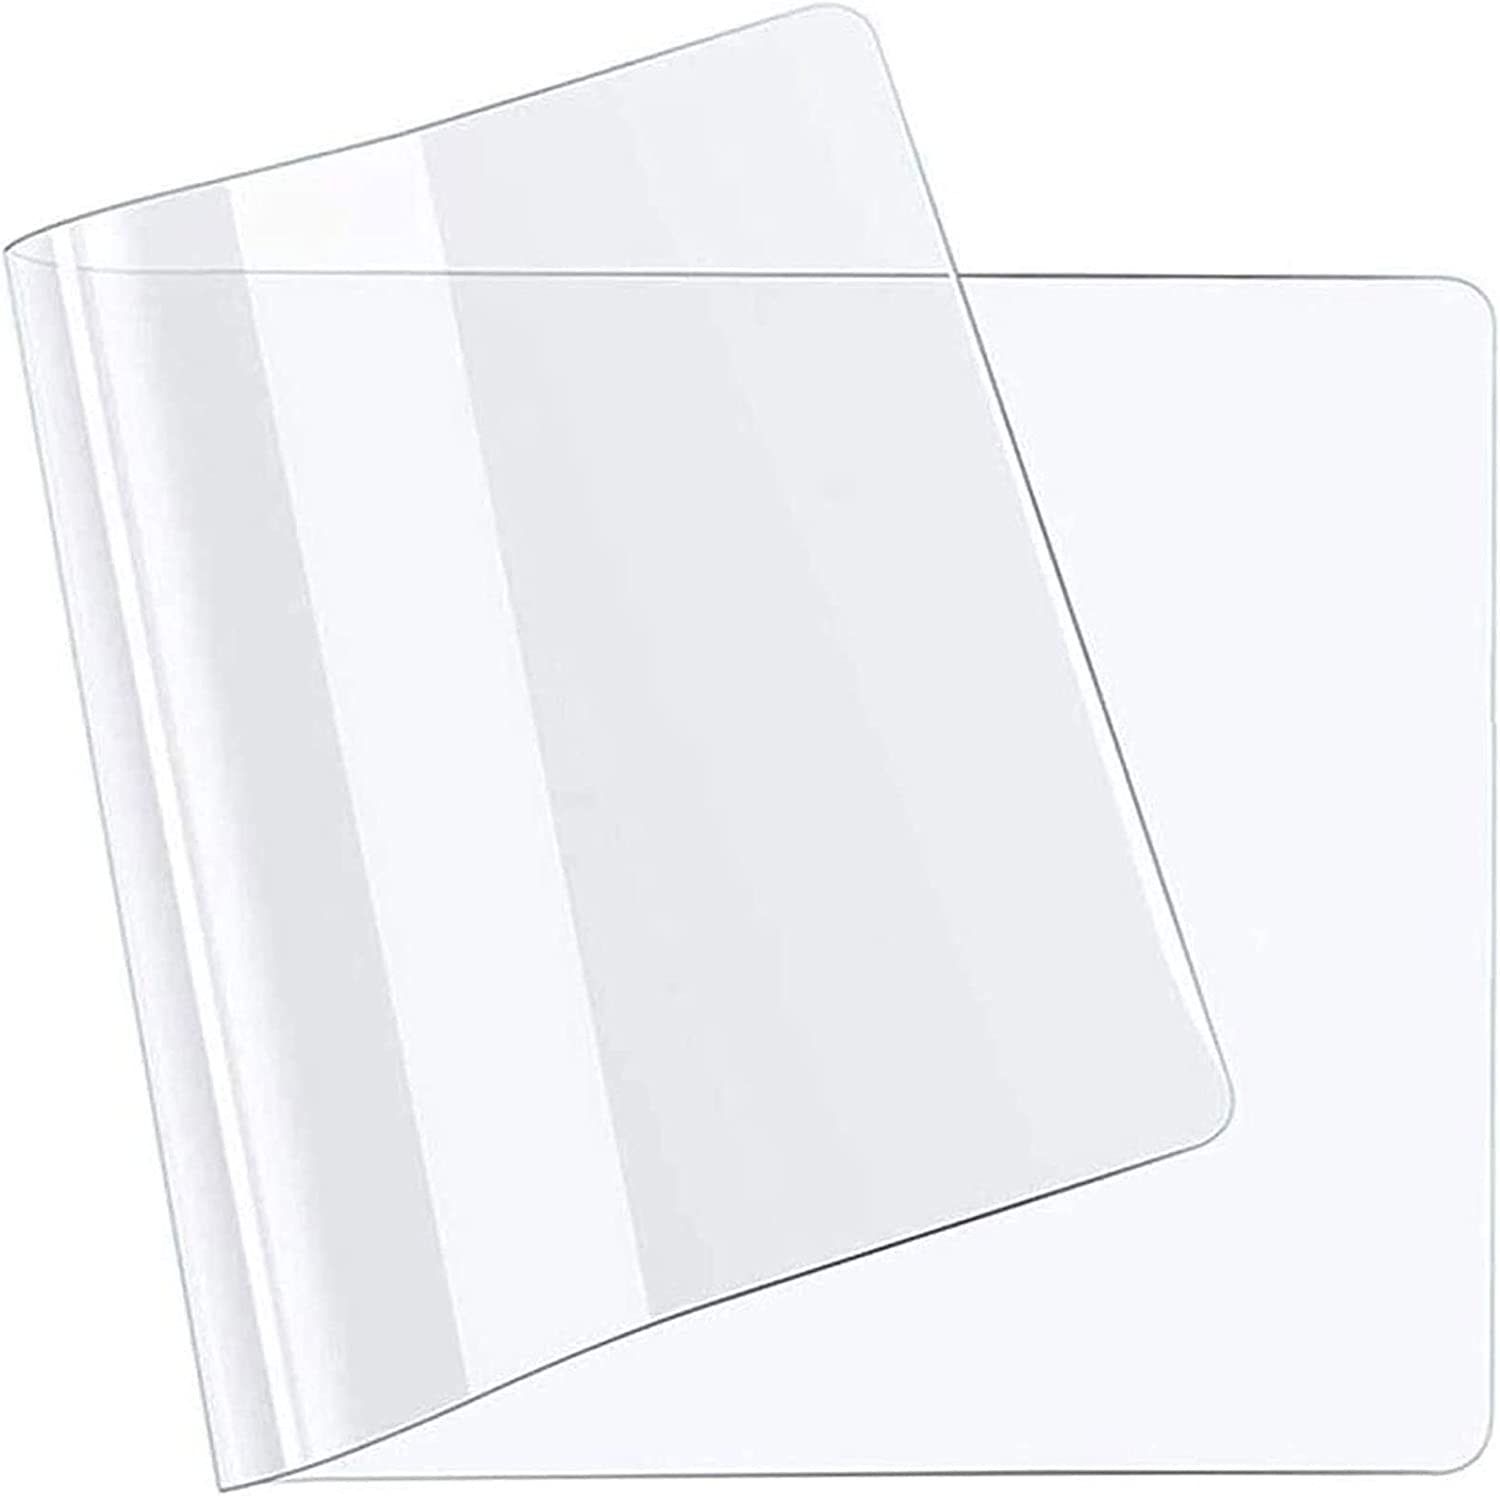 CWYP-043 Transparent 5 ☆ popular Tablecloth Tucson Mall Protector Tabl Clear Waterproof